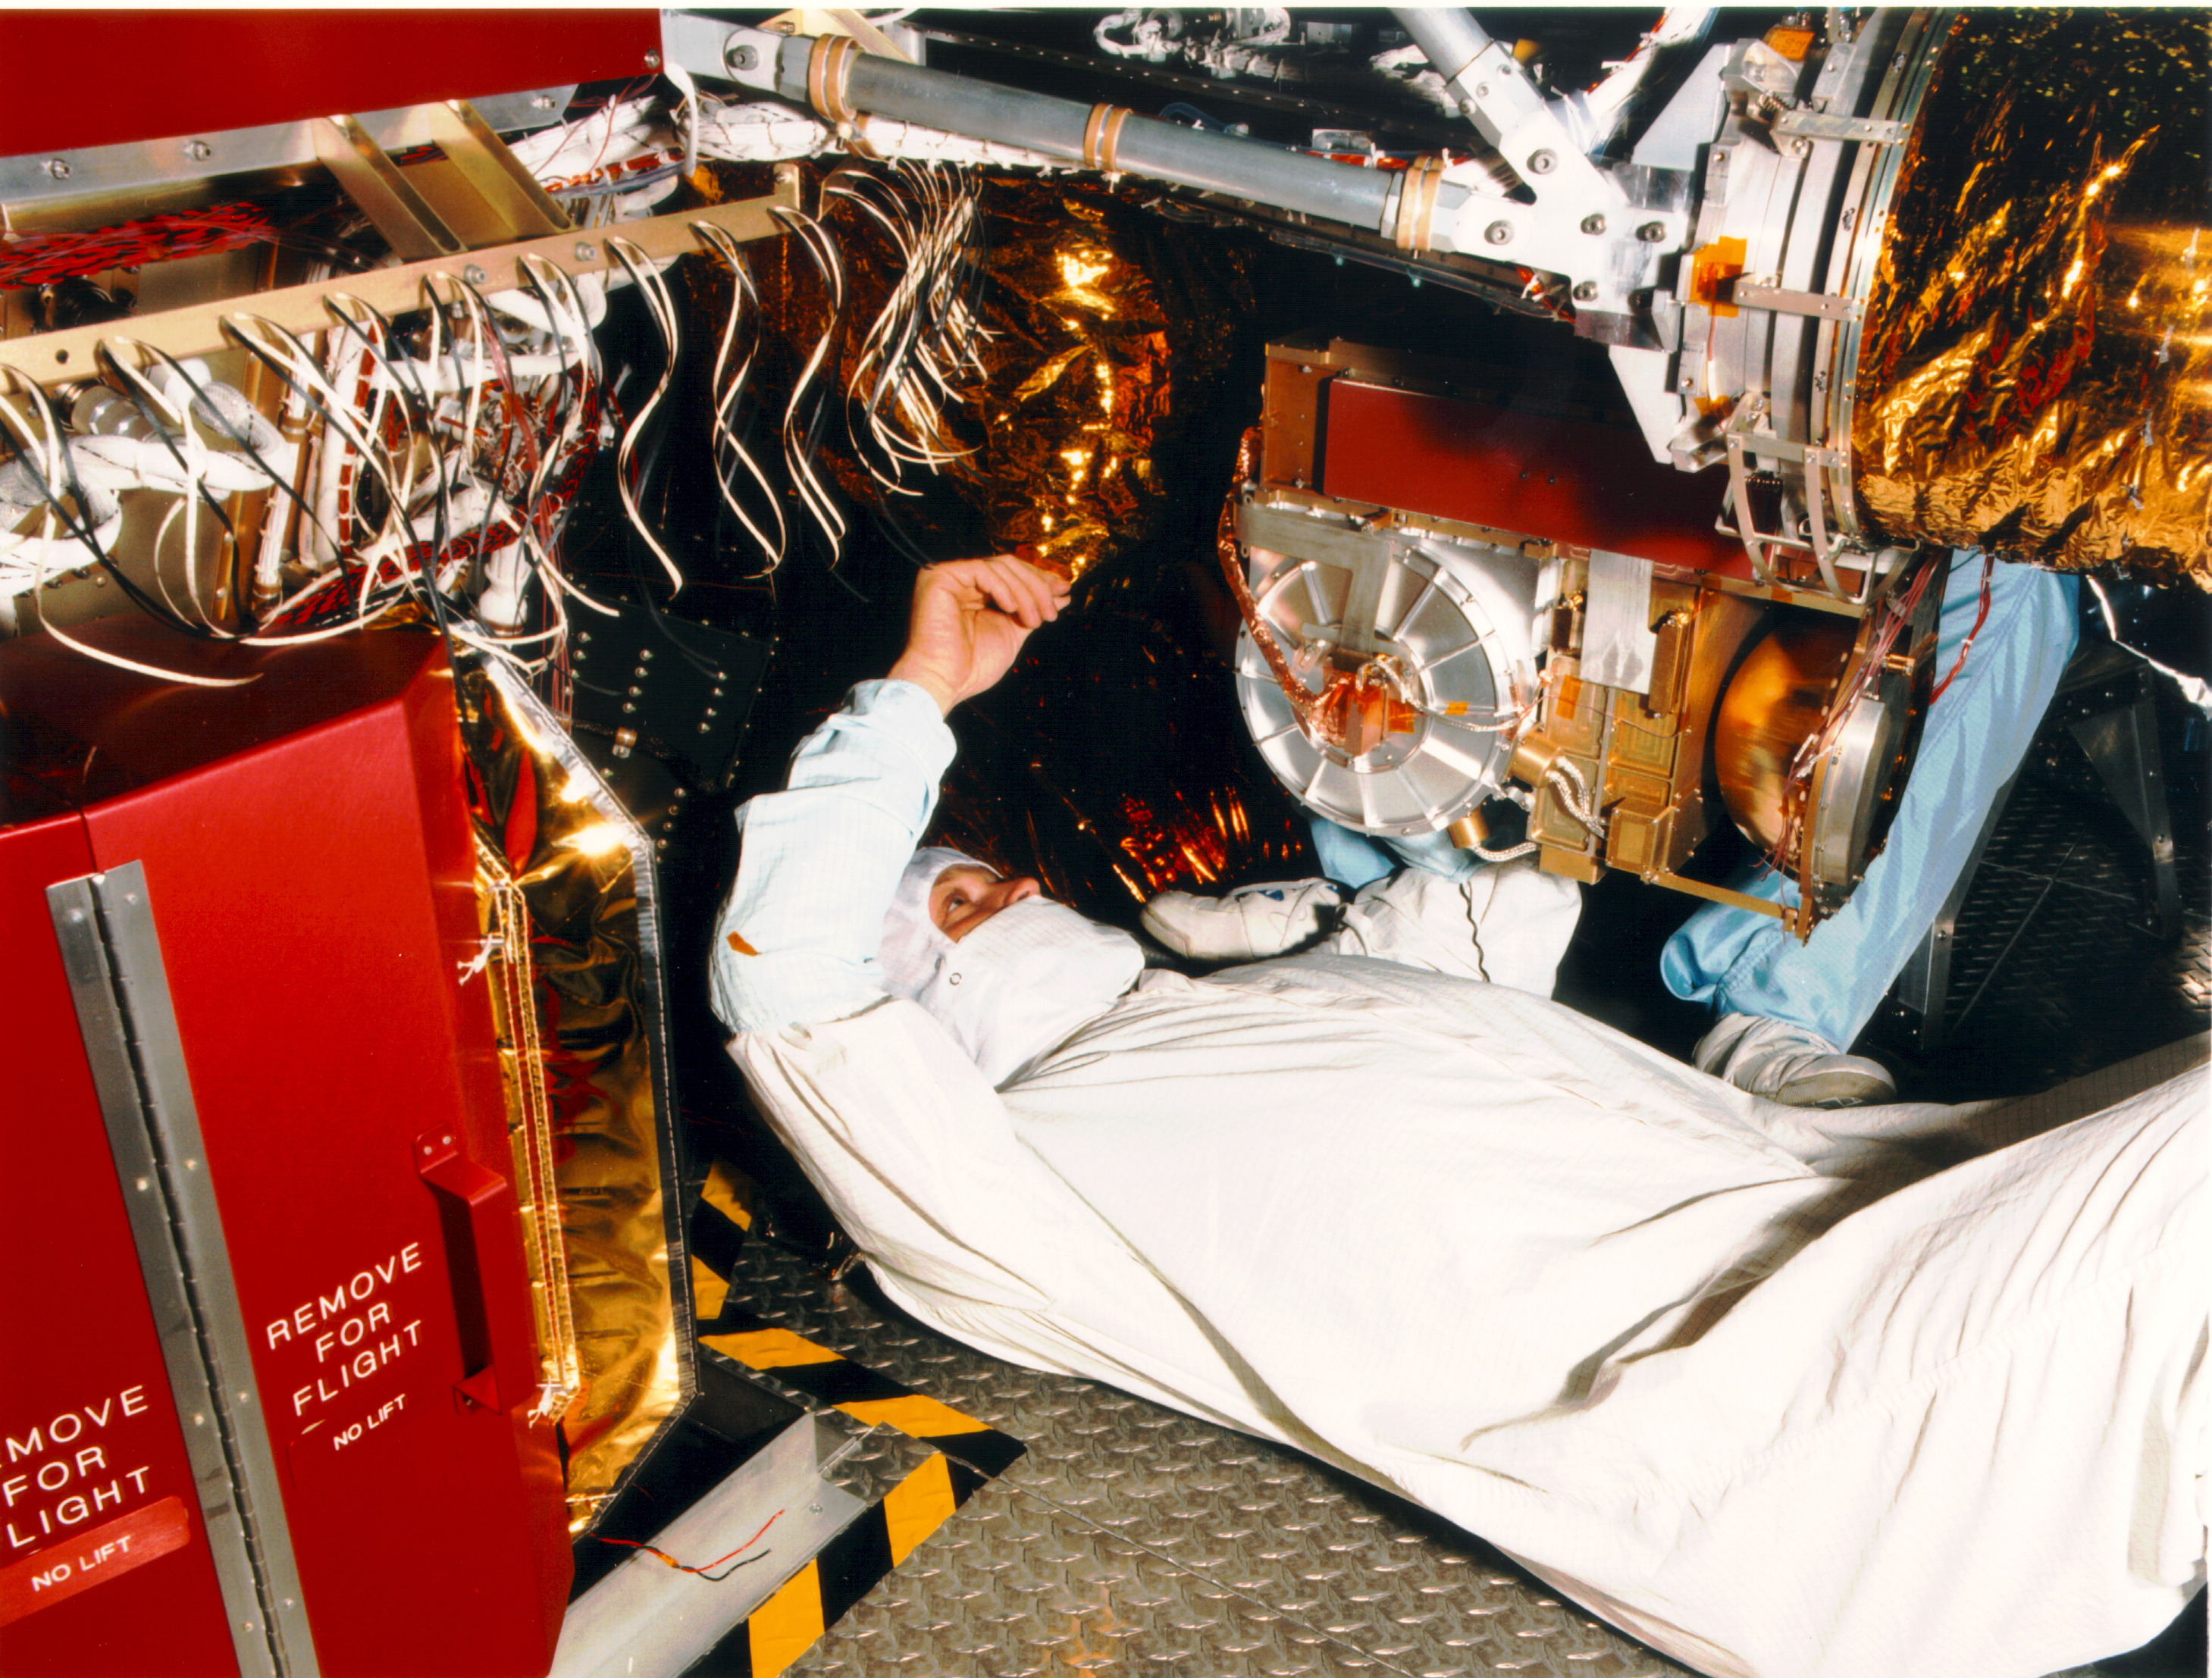 Color image of man on his back working on a spacecraft.